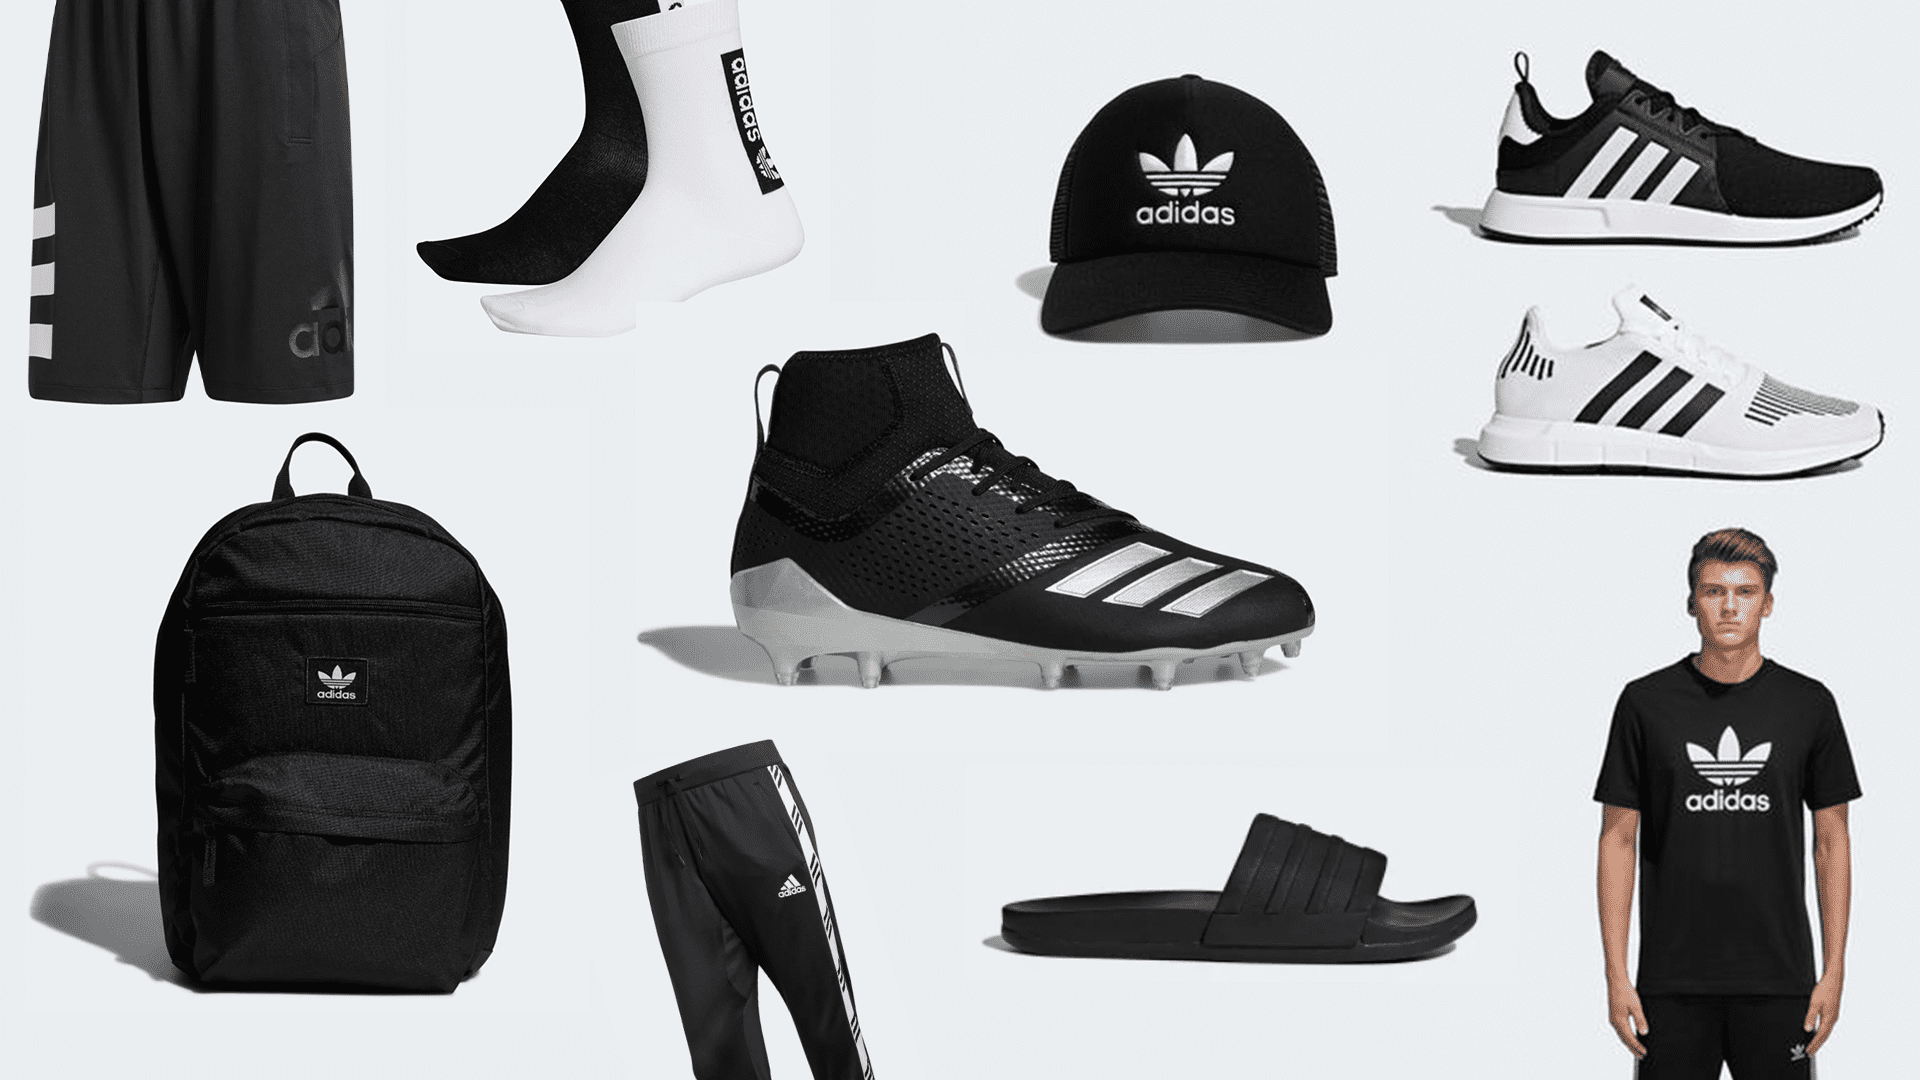 All Day I Dream About So Much Gear - ADIDAS